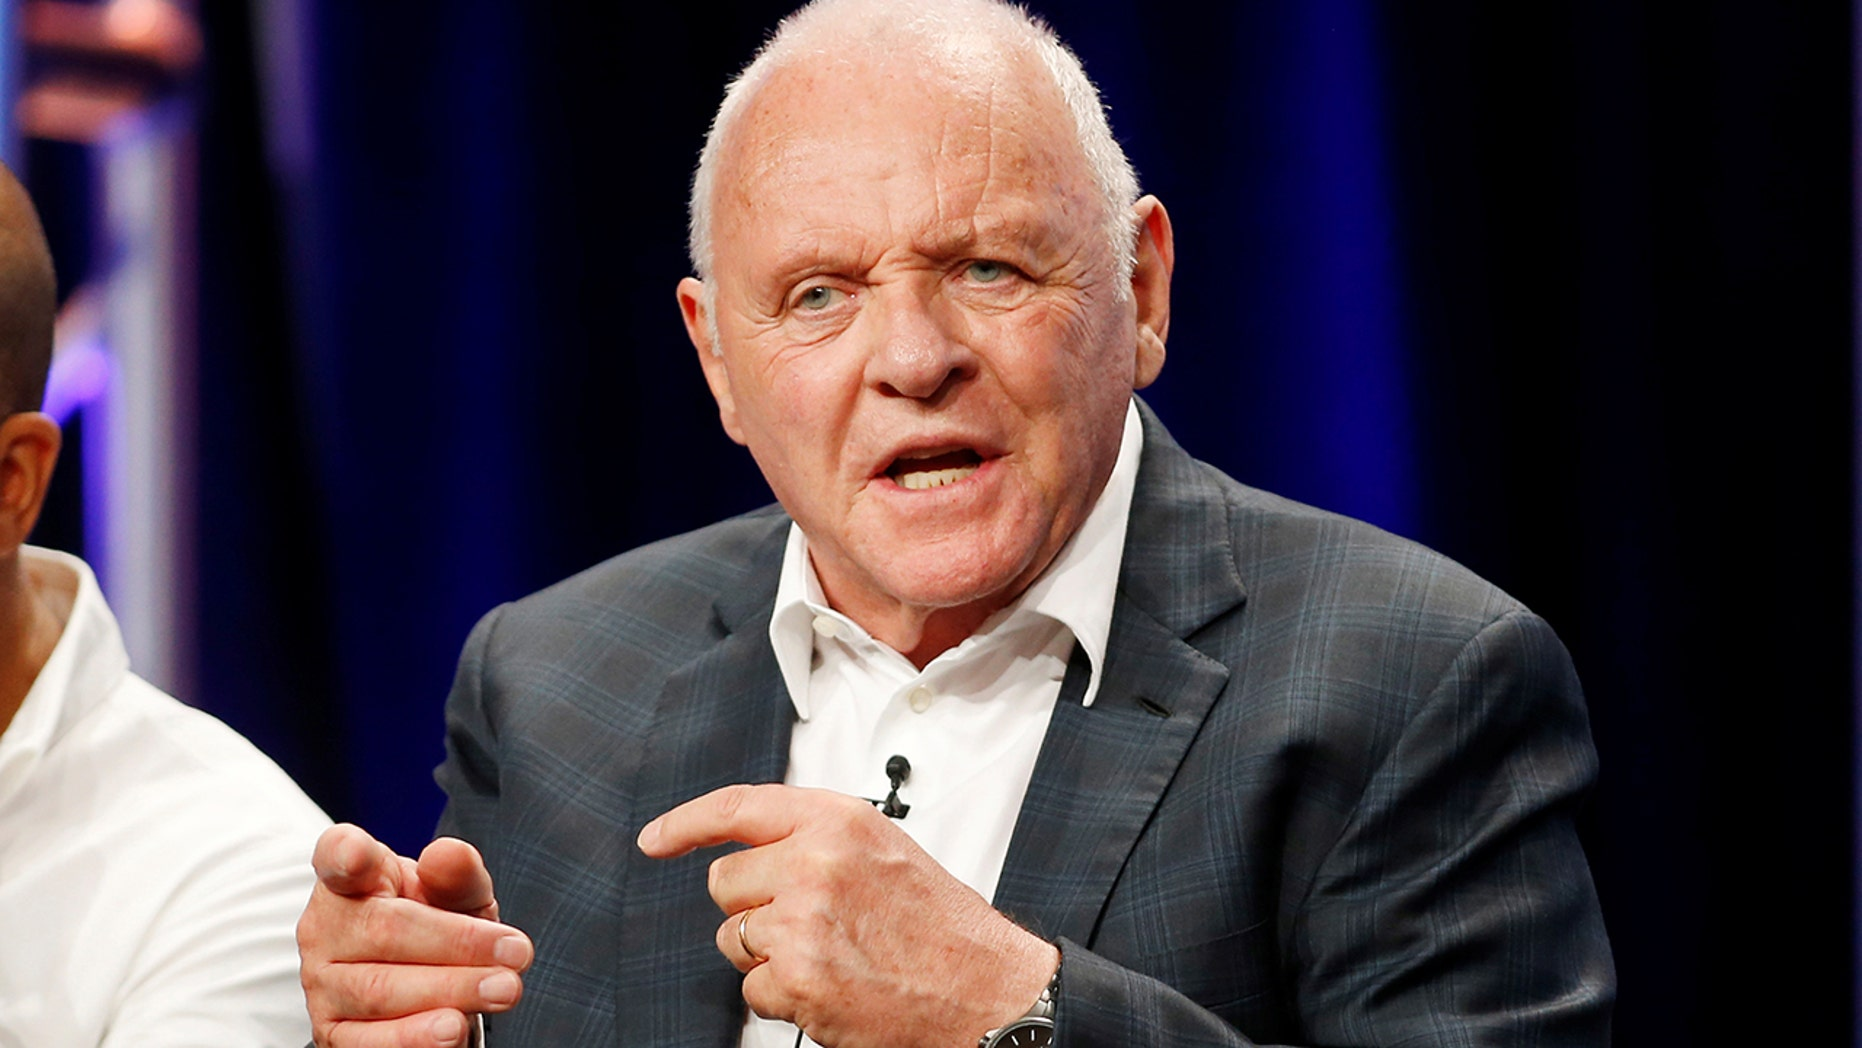 Anthony Hopkins shares daughter Abigail with his first wife Petronella Barker.